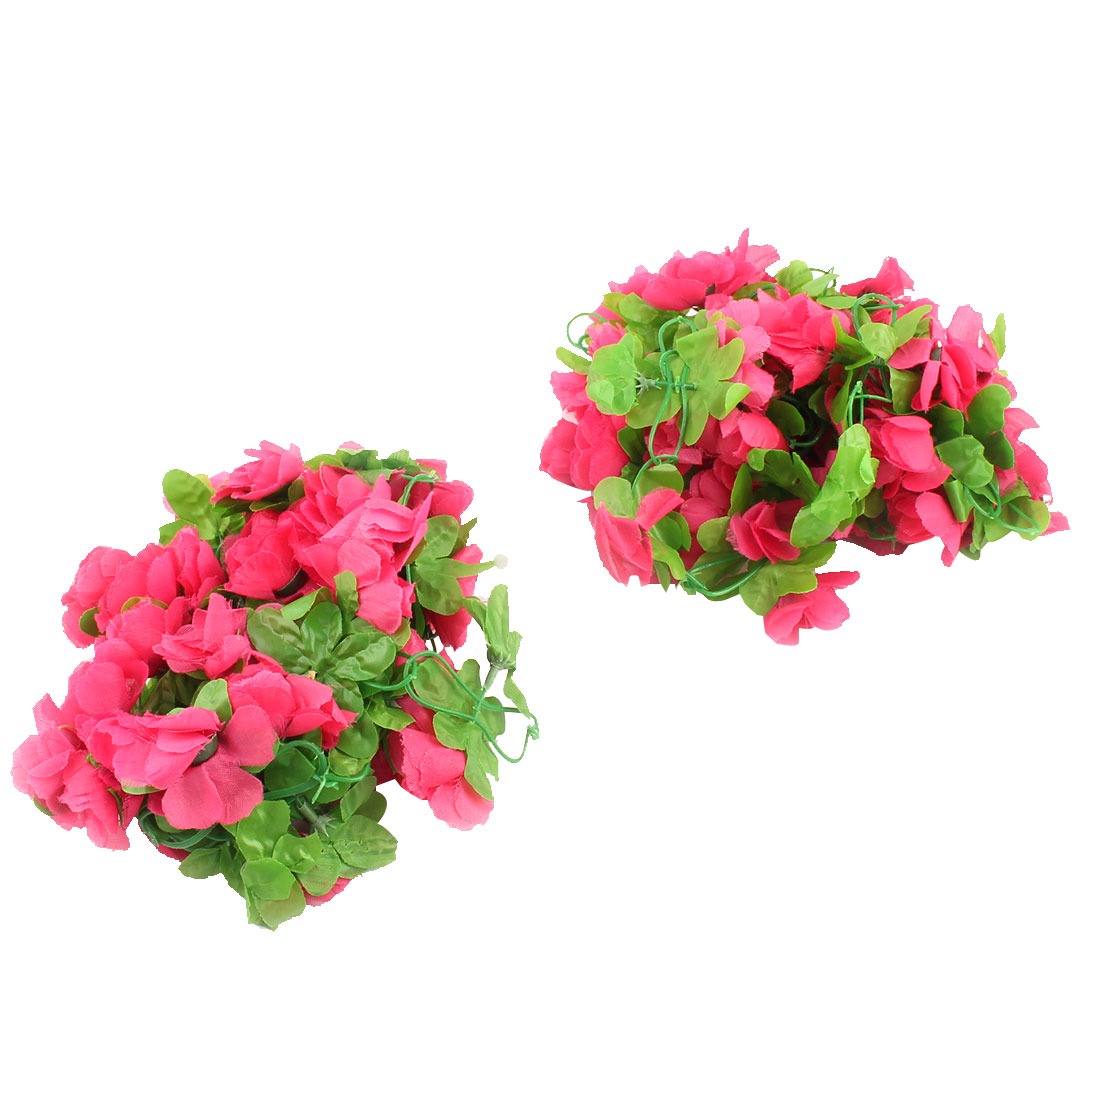 Room Wall Plastic Artificial Hanging Vine Decor Green Red 2 Meter Long 2 Pcs